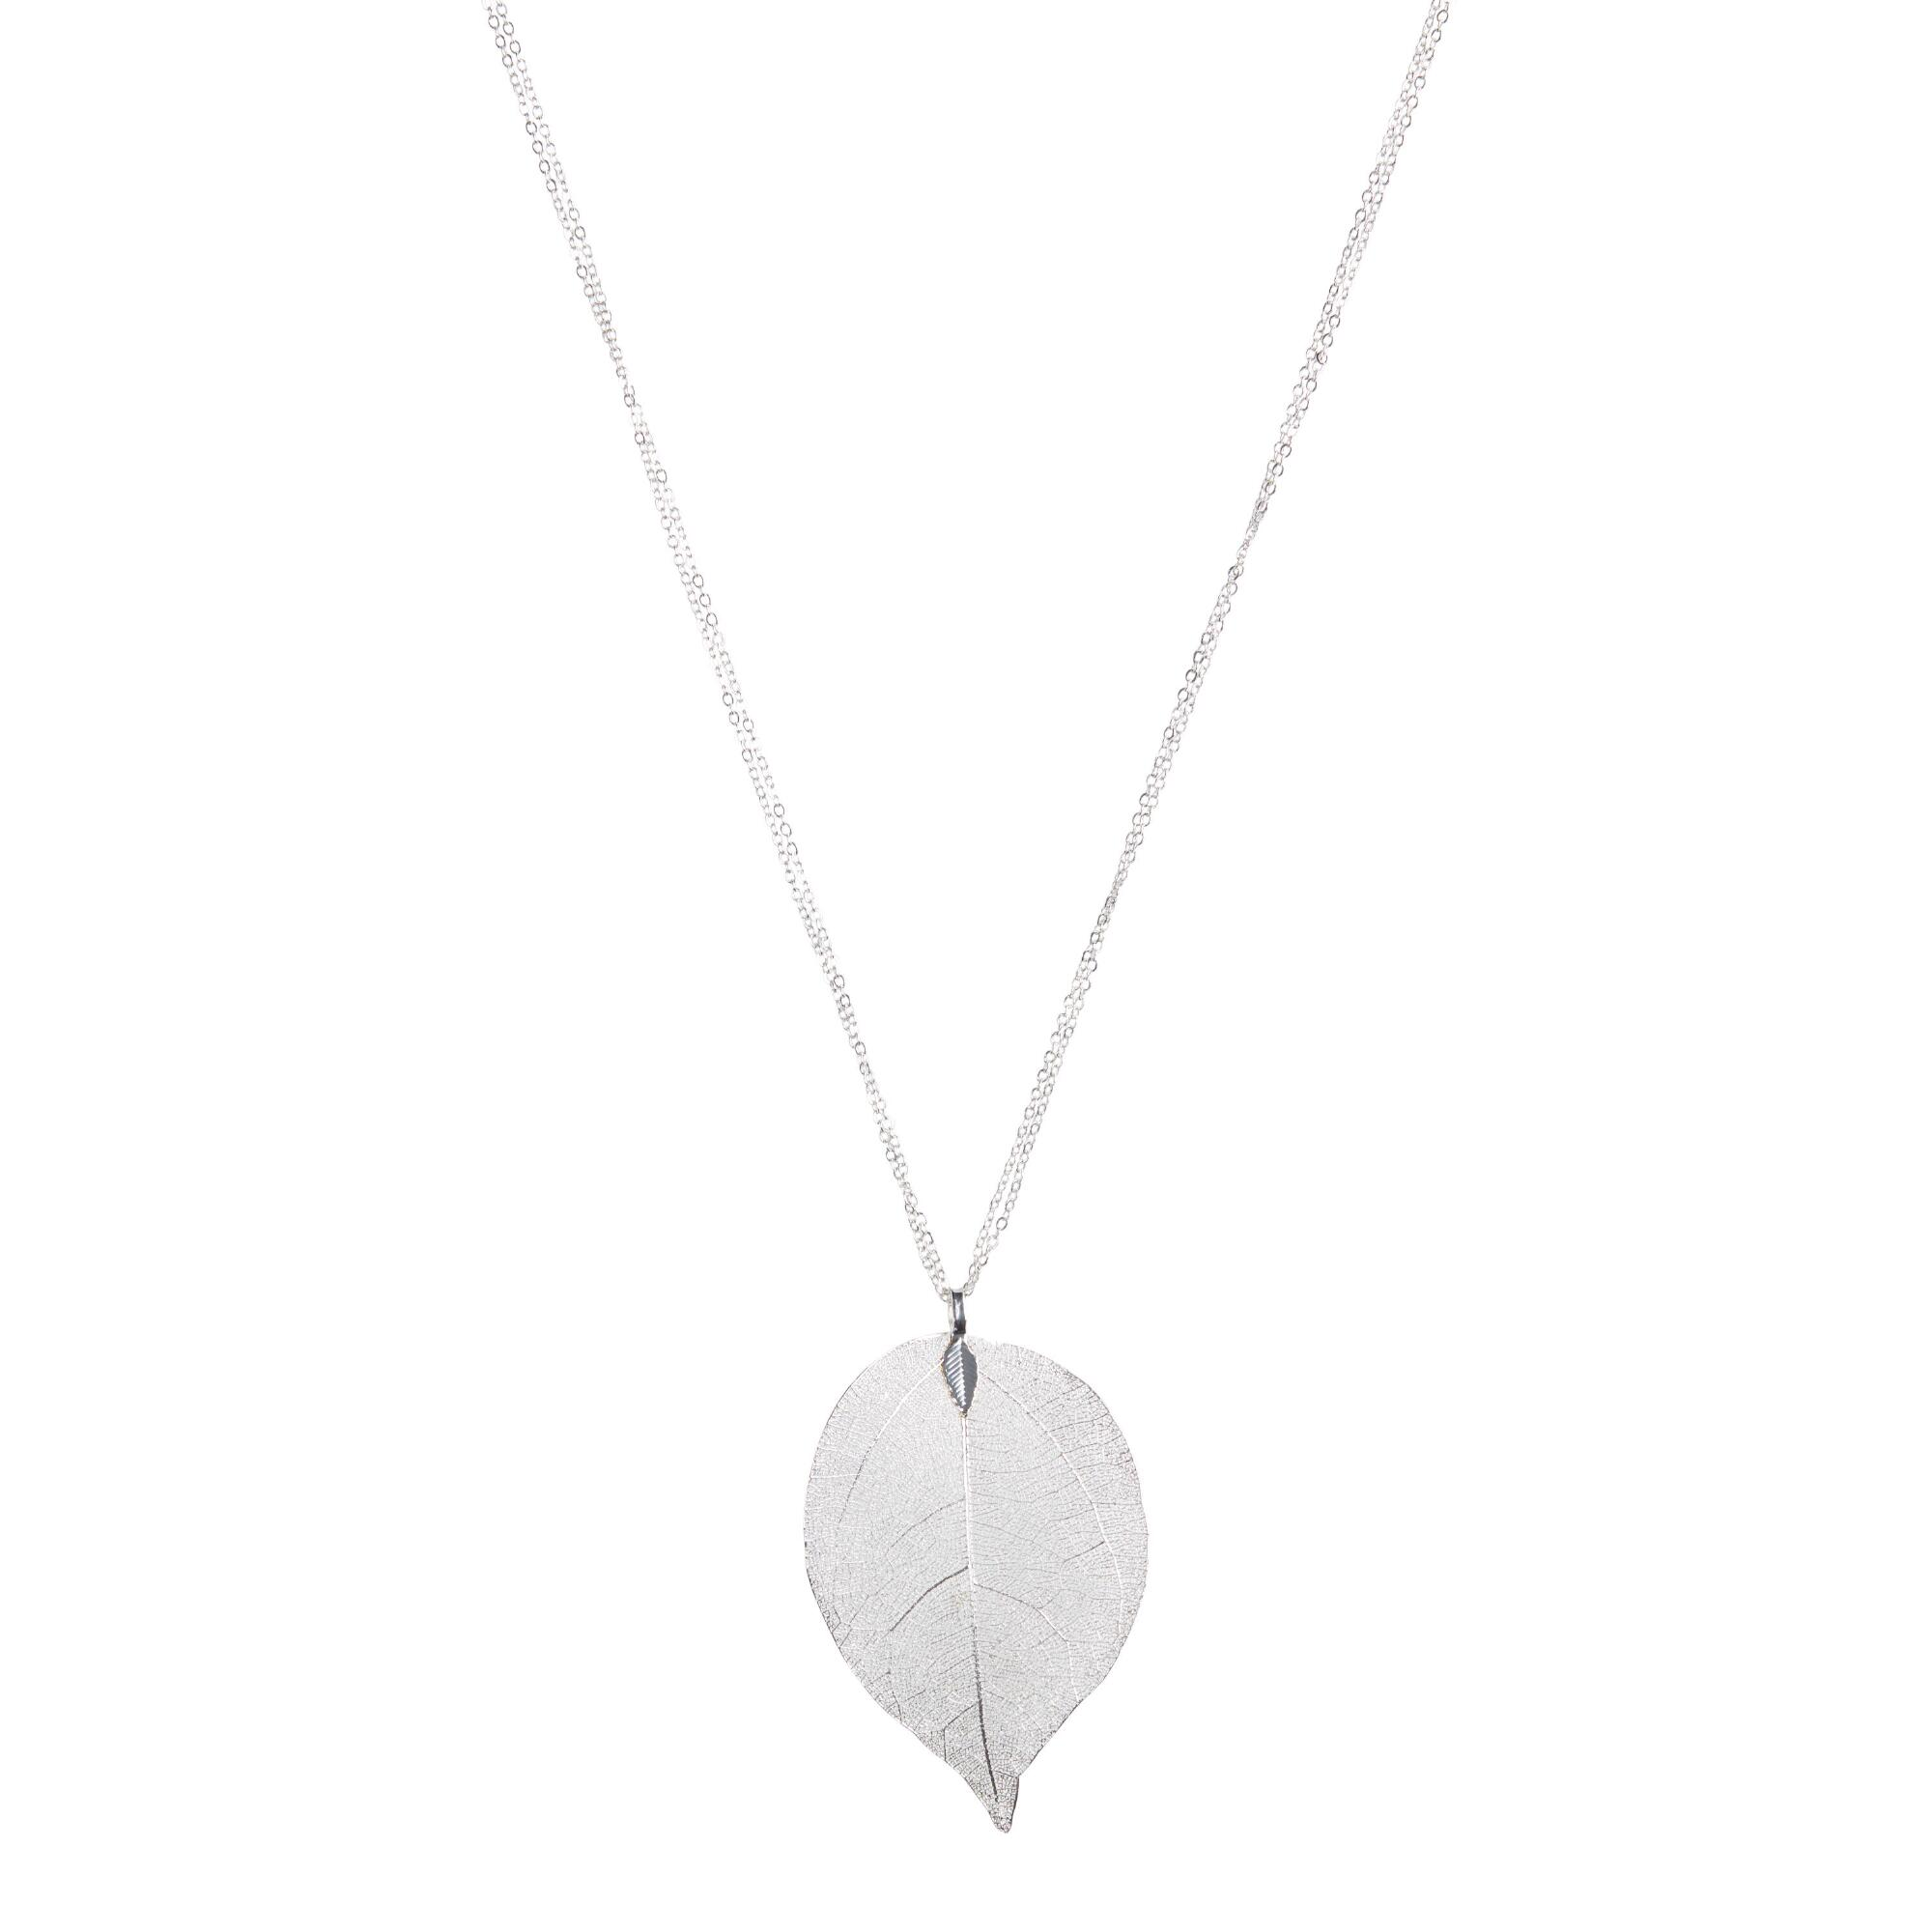 she img showthelove necklace persisted pendant nevertheless product recovery